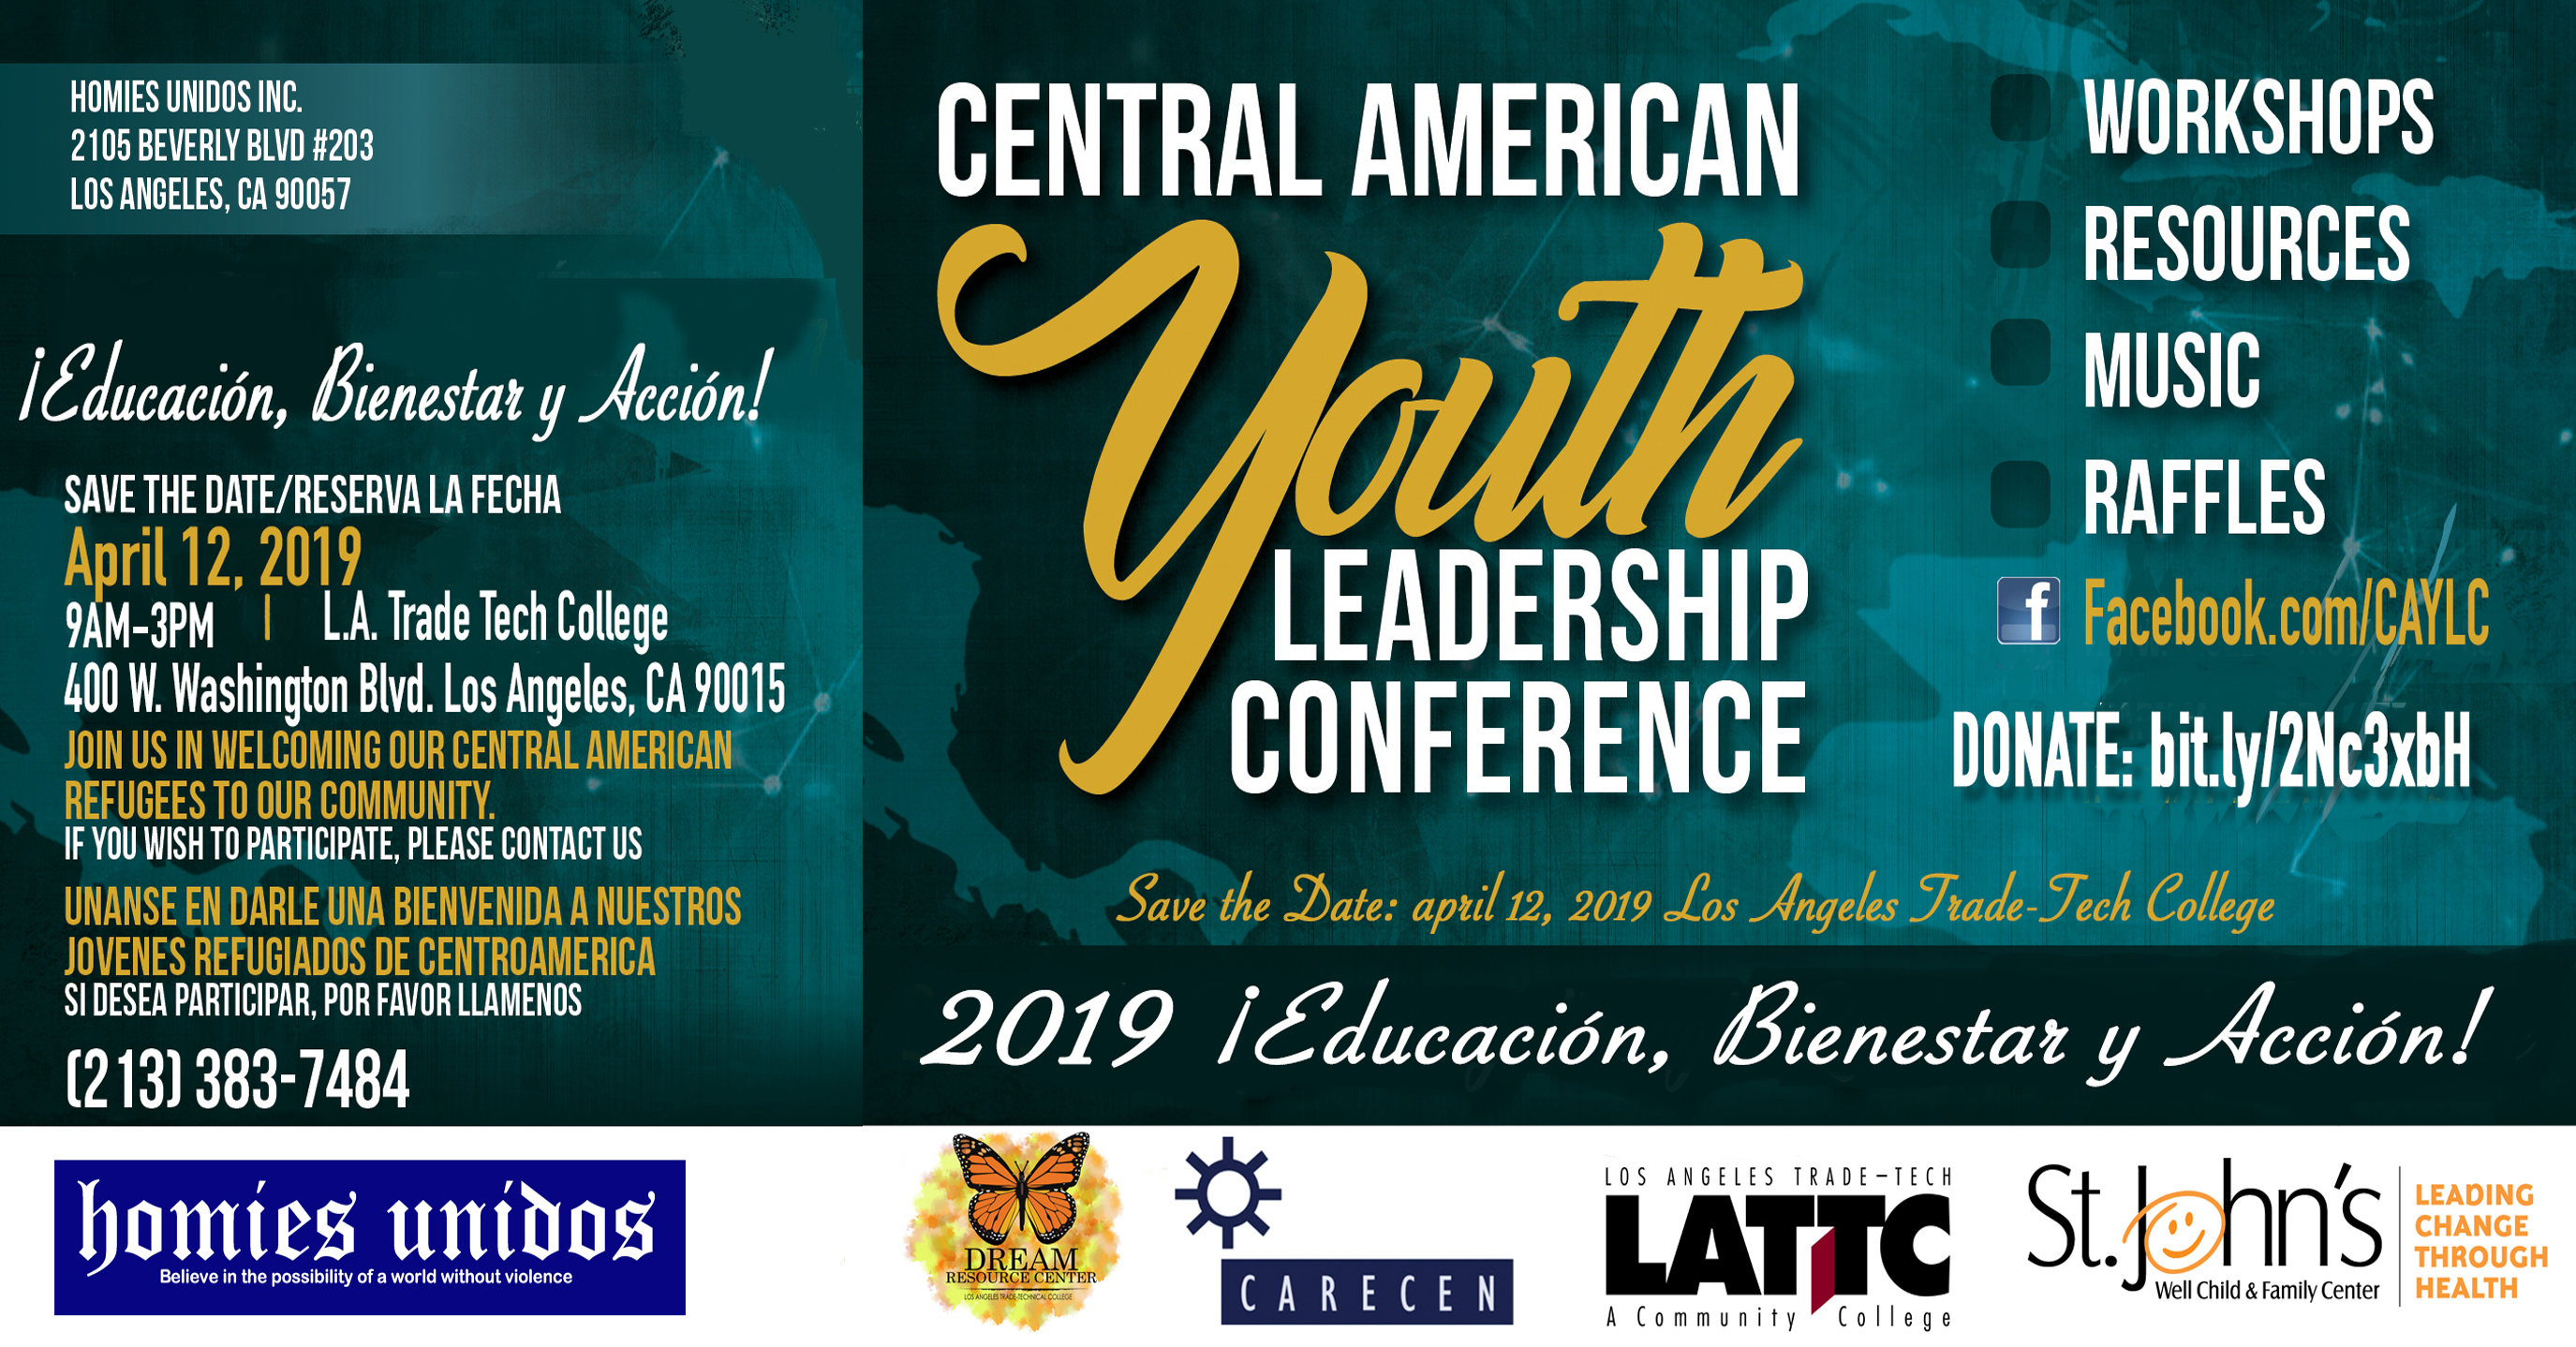 Homies Unidos » Central American Youth Leadership Conference 2019